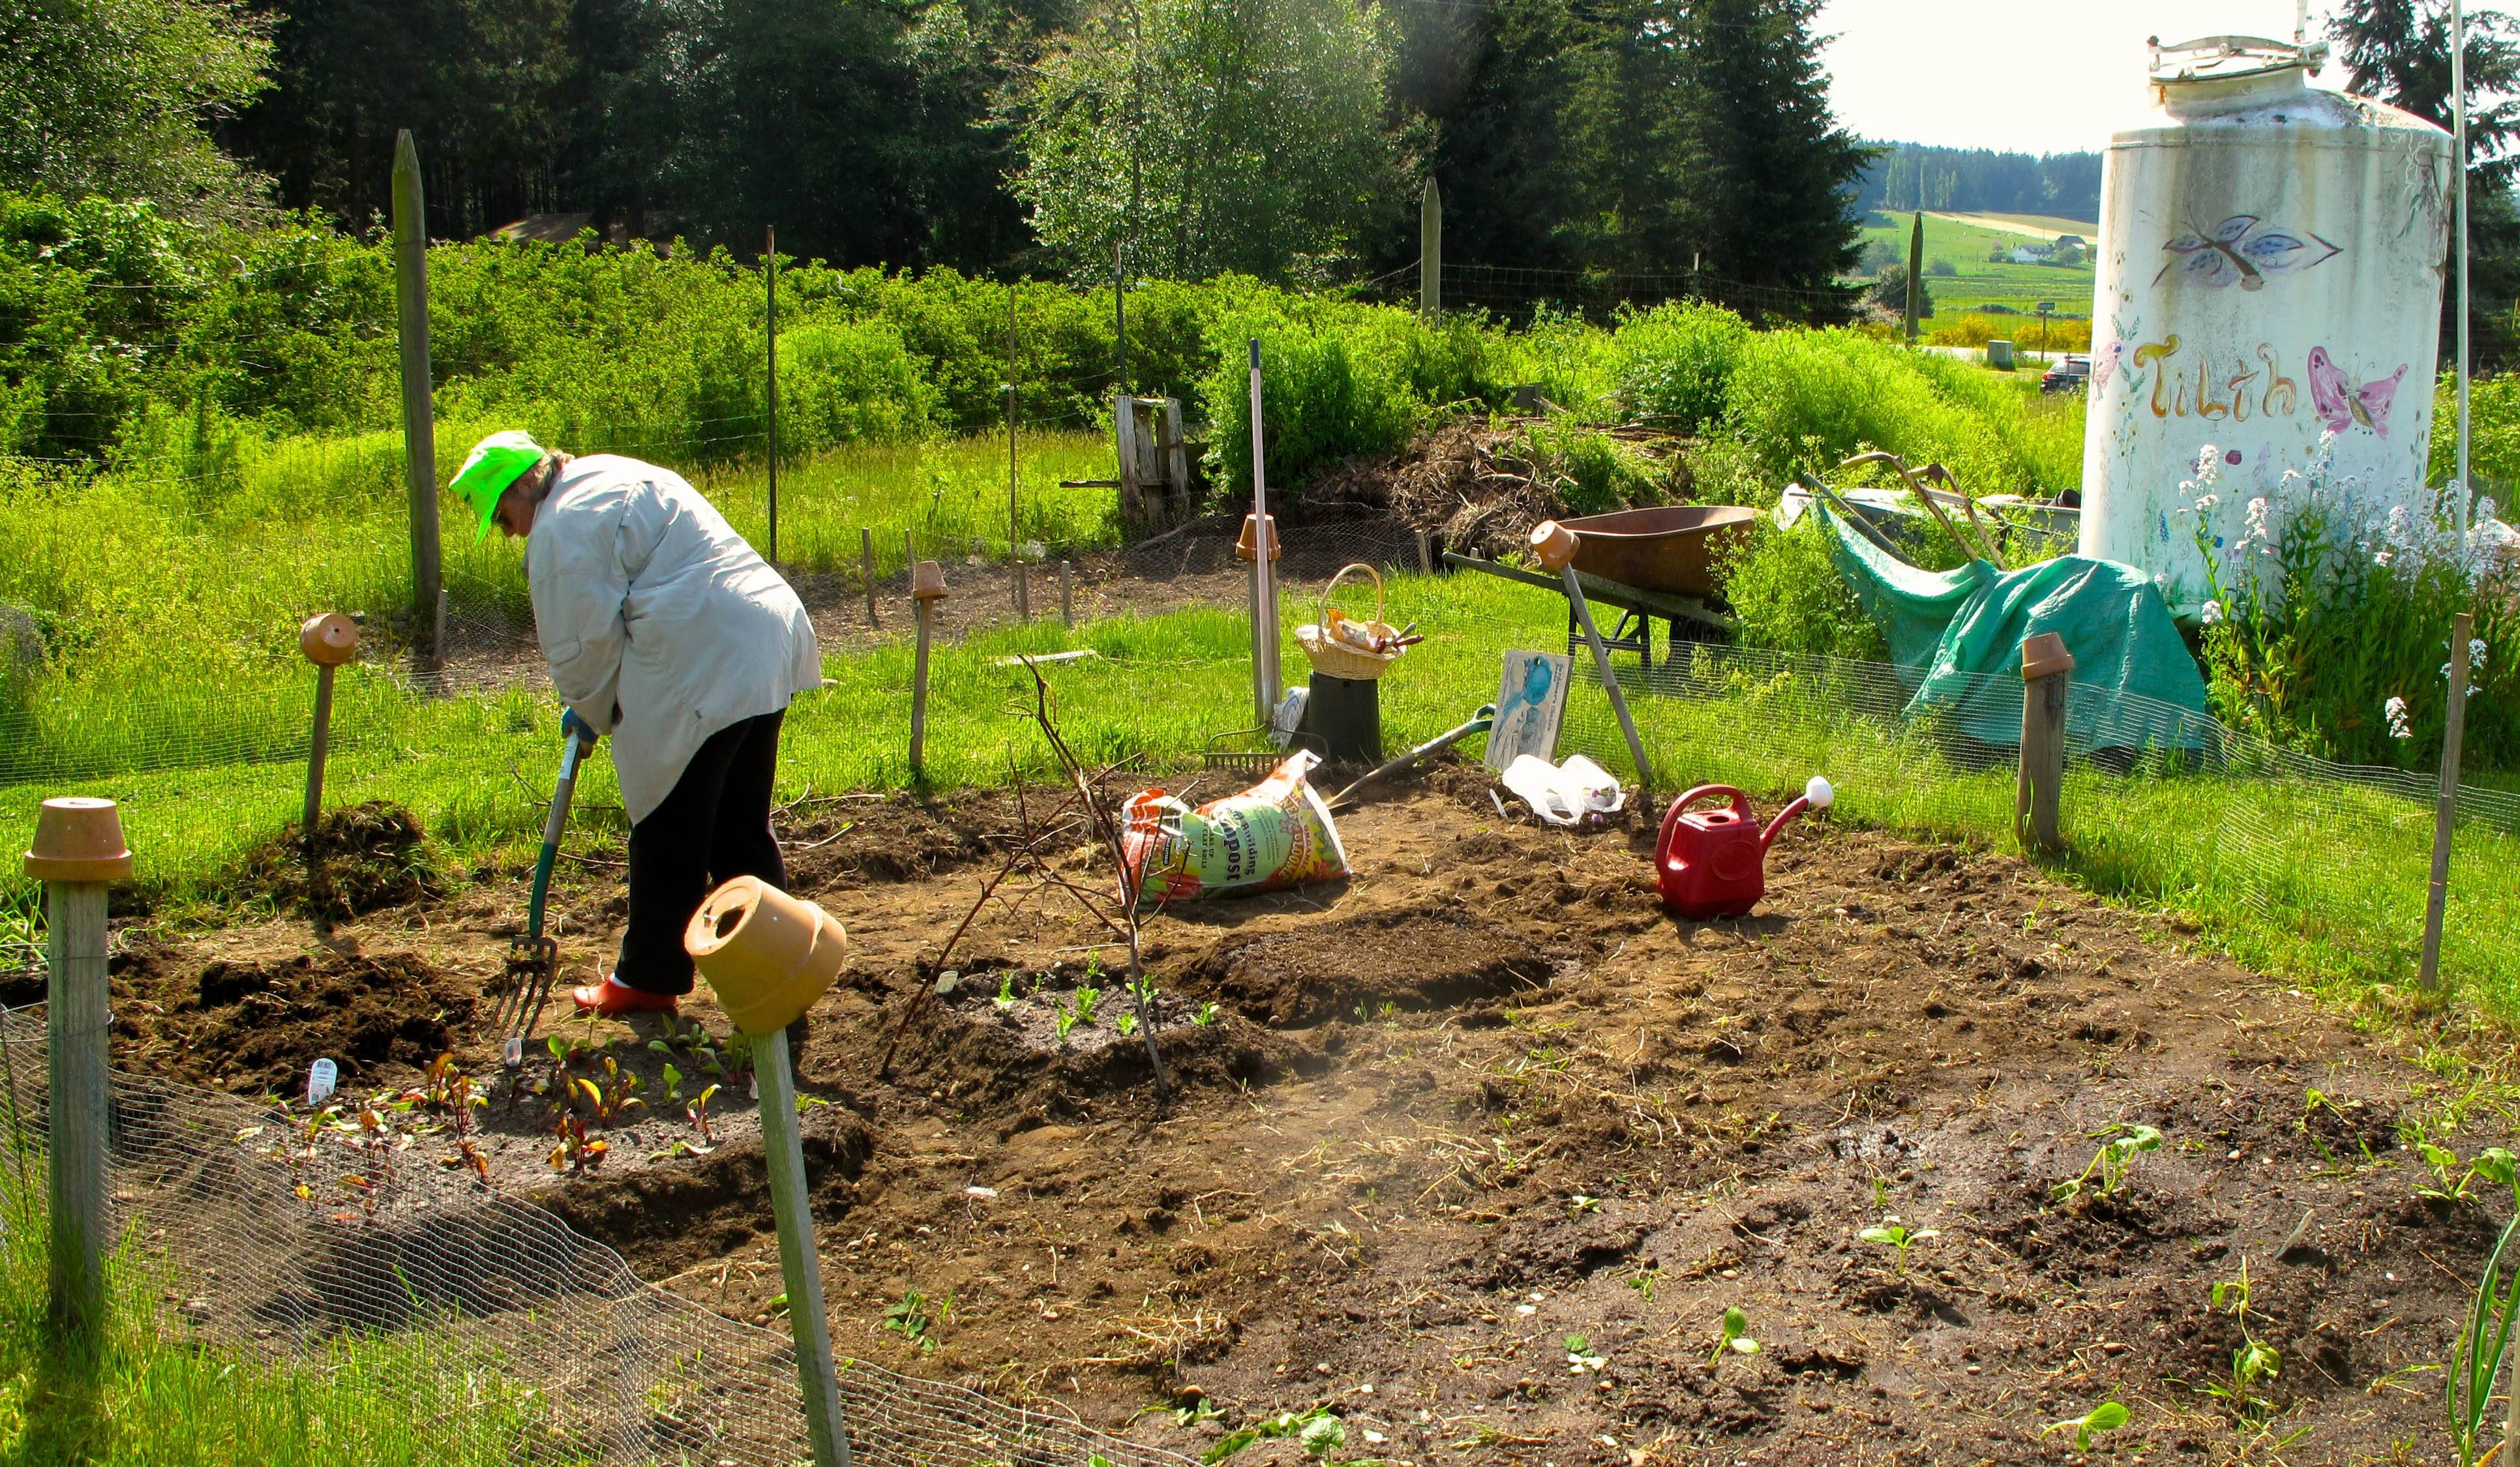 A woman prepares planting beds in her personal plot at the South Whidbey Tilth Community Garden near Freeland, Wash. Gardeners can reserve a 20-foot by 20-foot space for a $50 annual fee, and must use organic growing methods and materials. The gardeners can keep what they grow but are encouraged to share in caring for the communal parts of the garden.